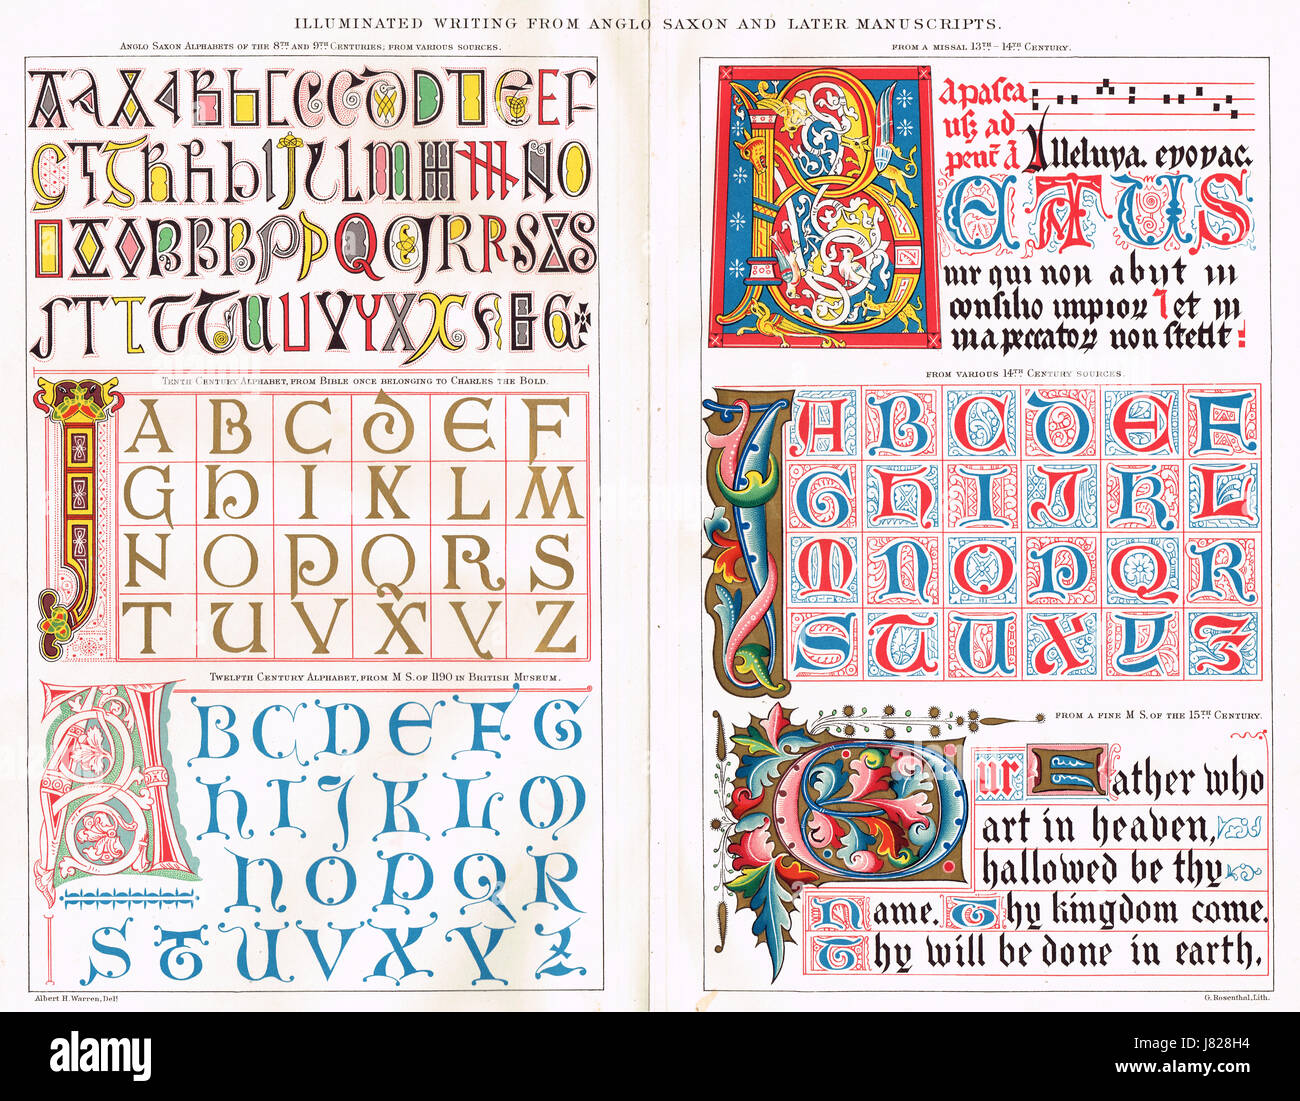 Examples of early illuminated writing Anglo Saxon & later - Stock Image